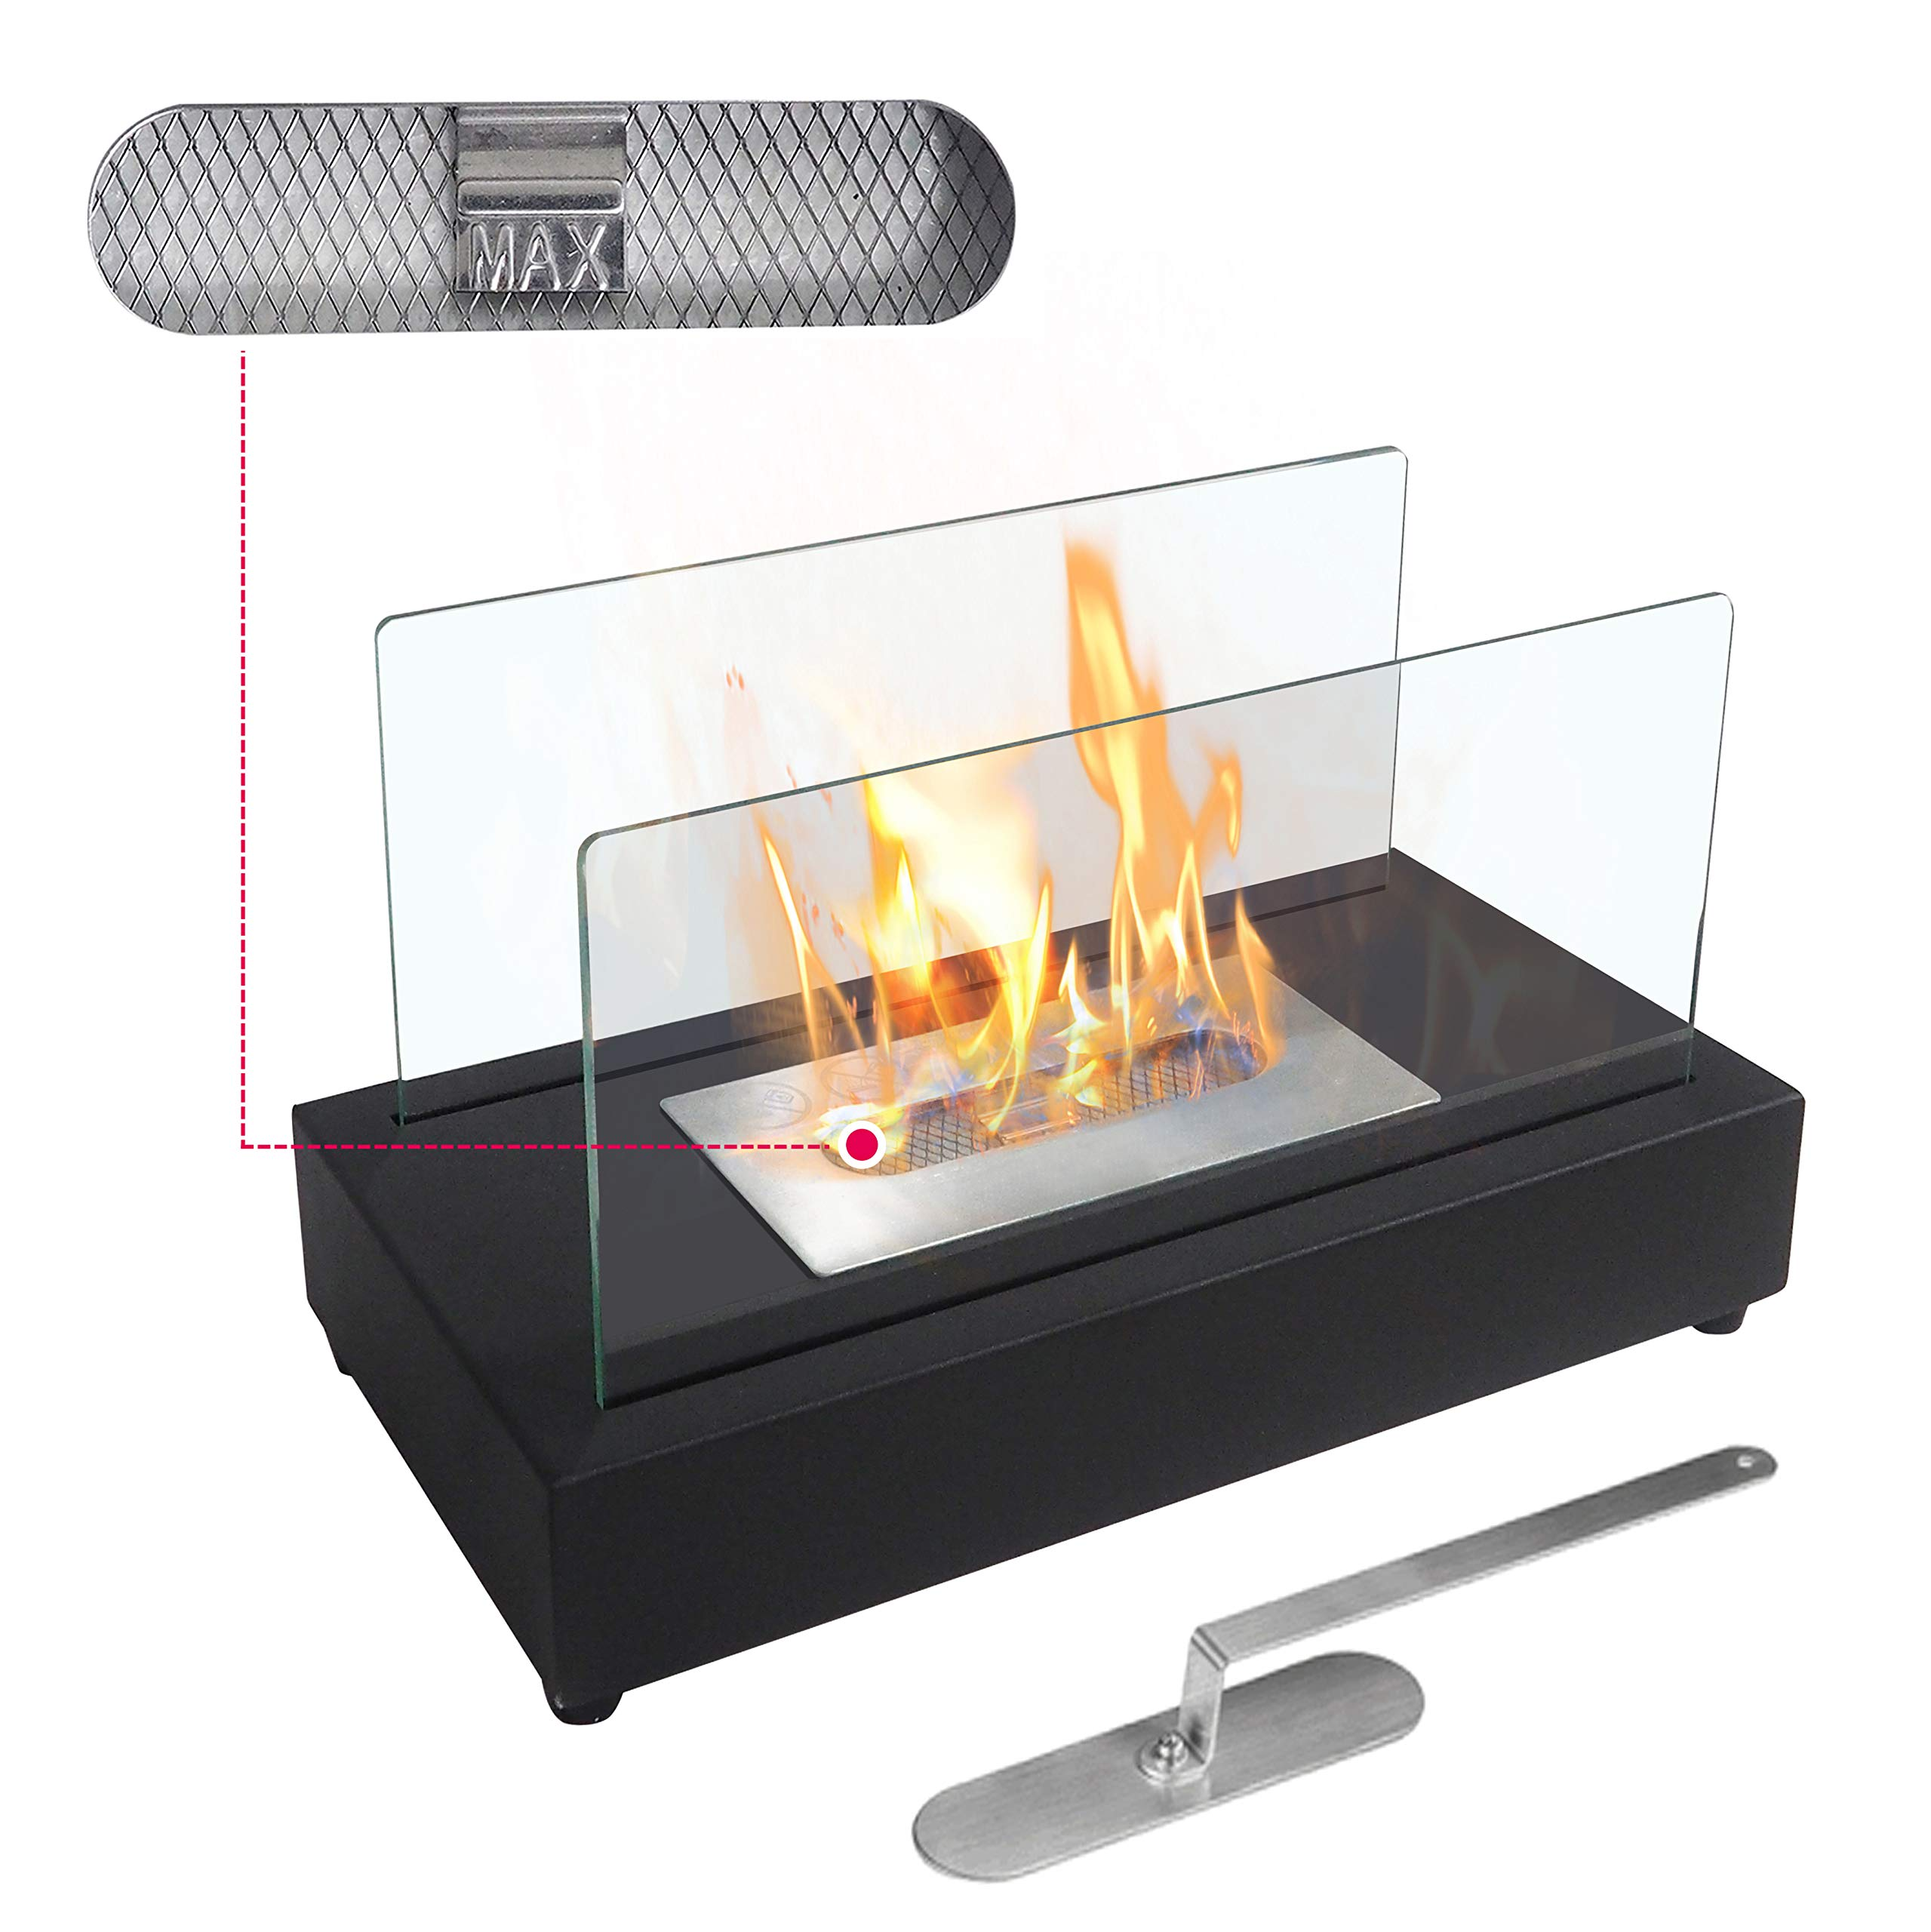 ATR ART TO REAL Upgrades Rectangle Tabletop Bio Ethanol Fireplace Indoor Outdoor Fire Pit Portable Fire Bowl Pot Fireplace in Black, Realistic Burning by ATR ART TO REAL